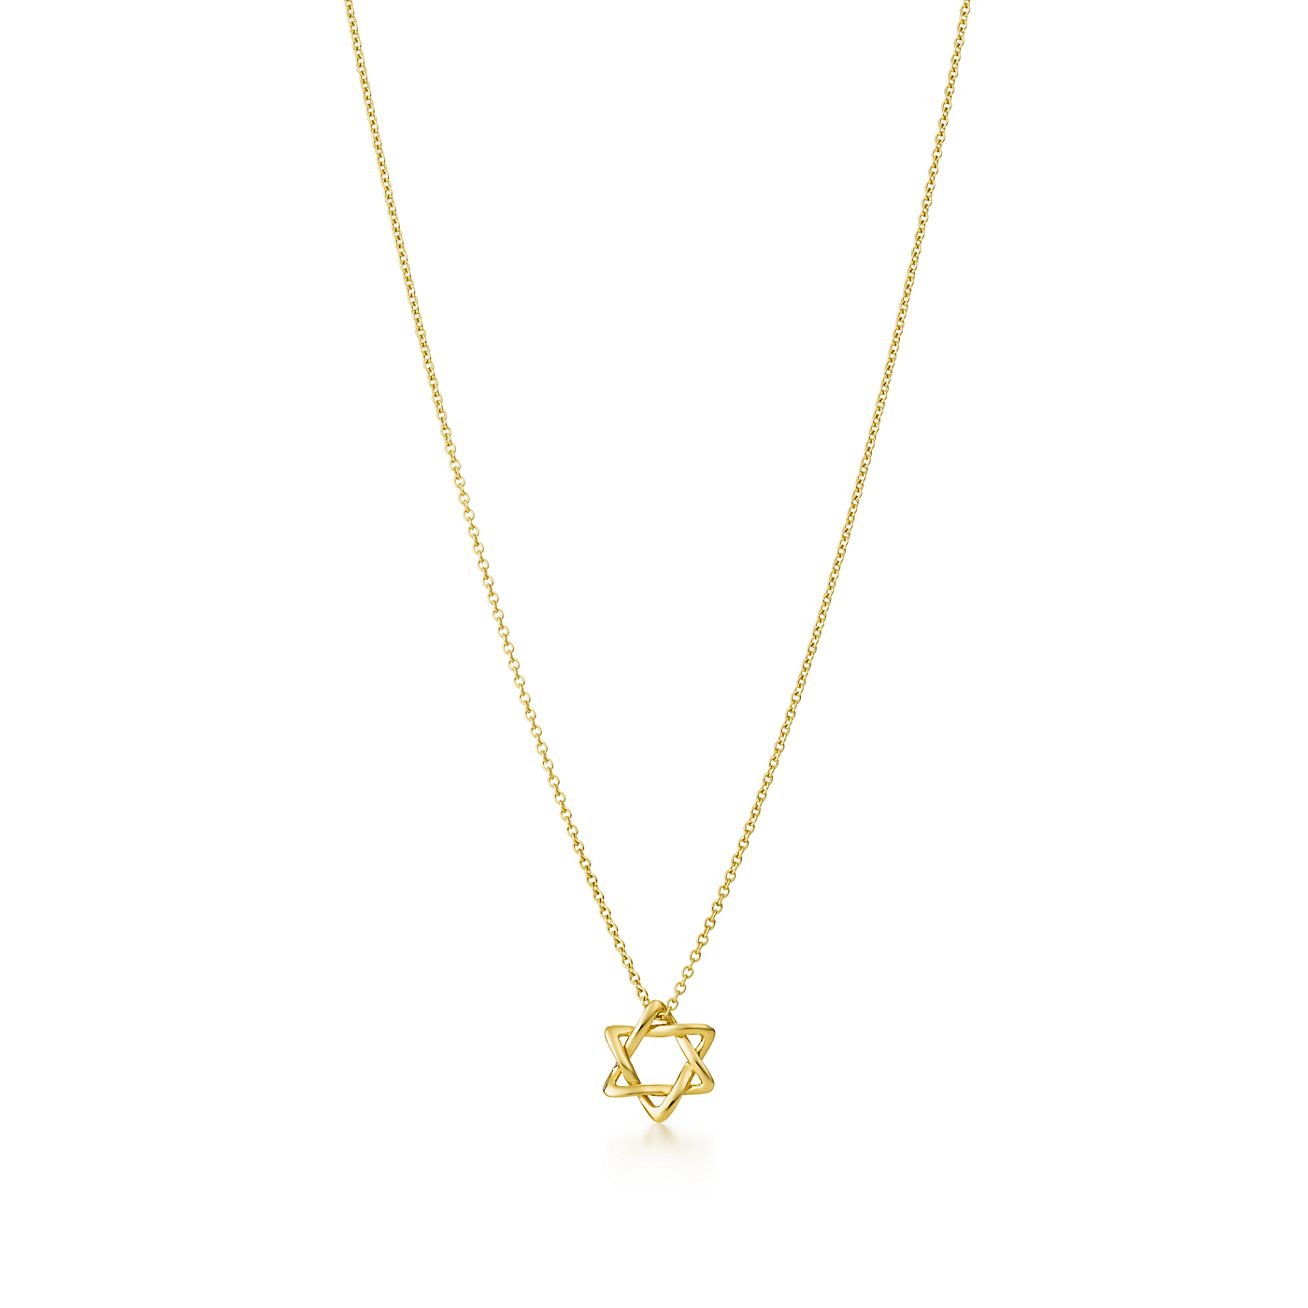 necklaces products necklace magen david next silver collections alinmay